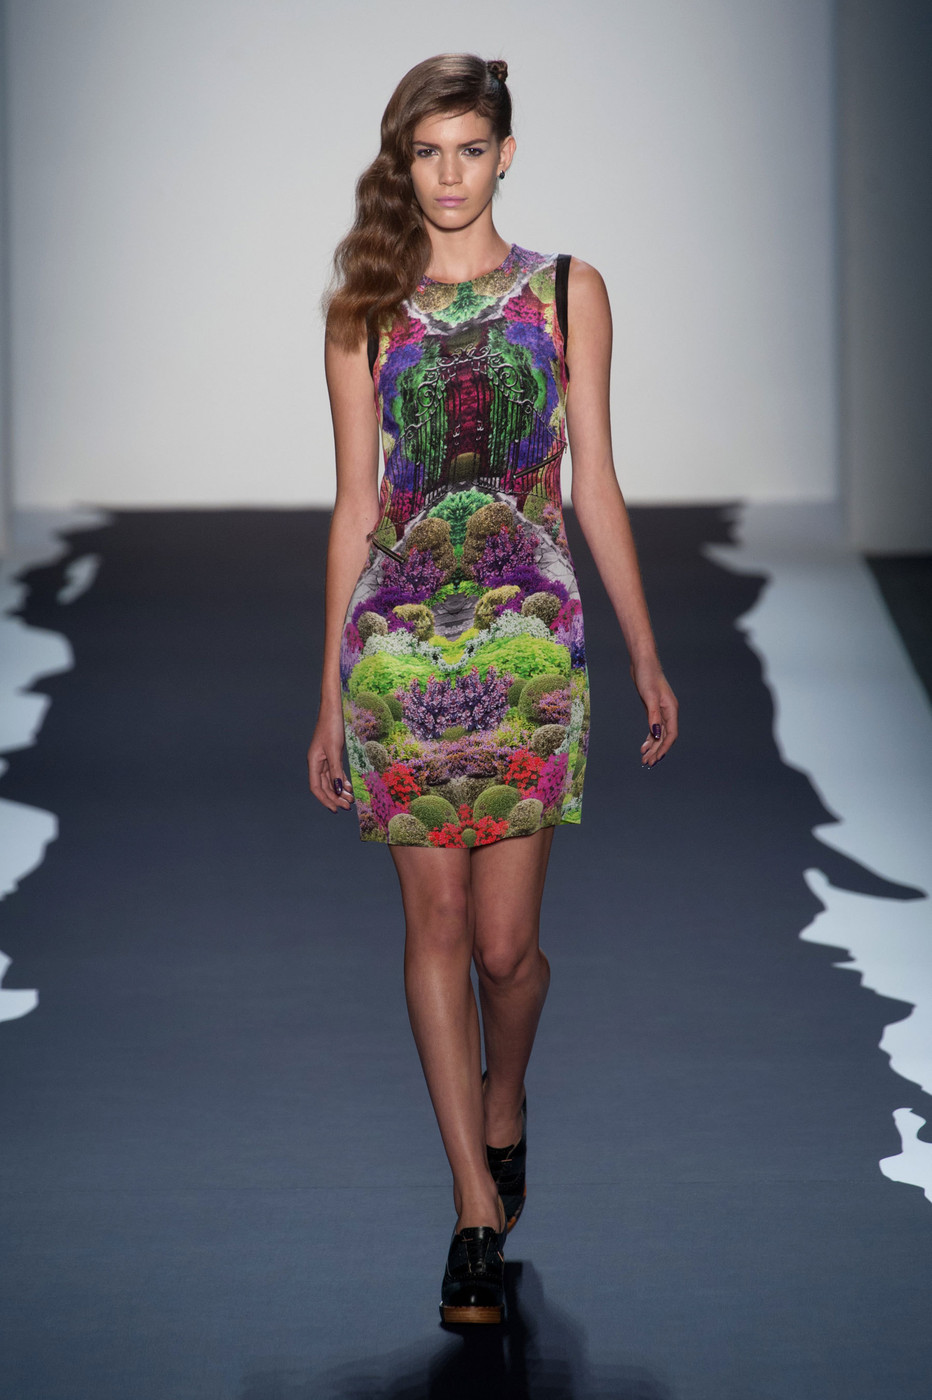 emerson by jackie fraser swan at new york fashion week spring 2014